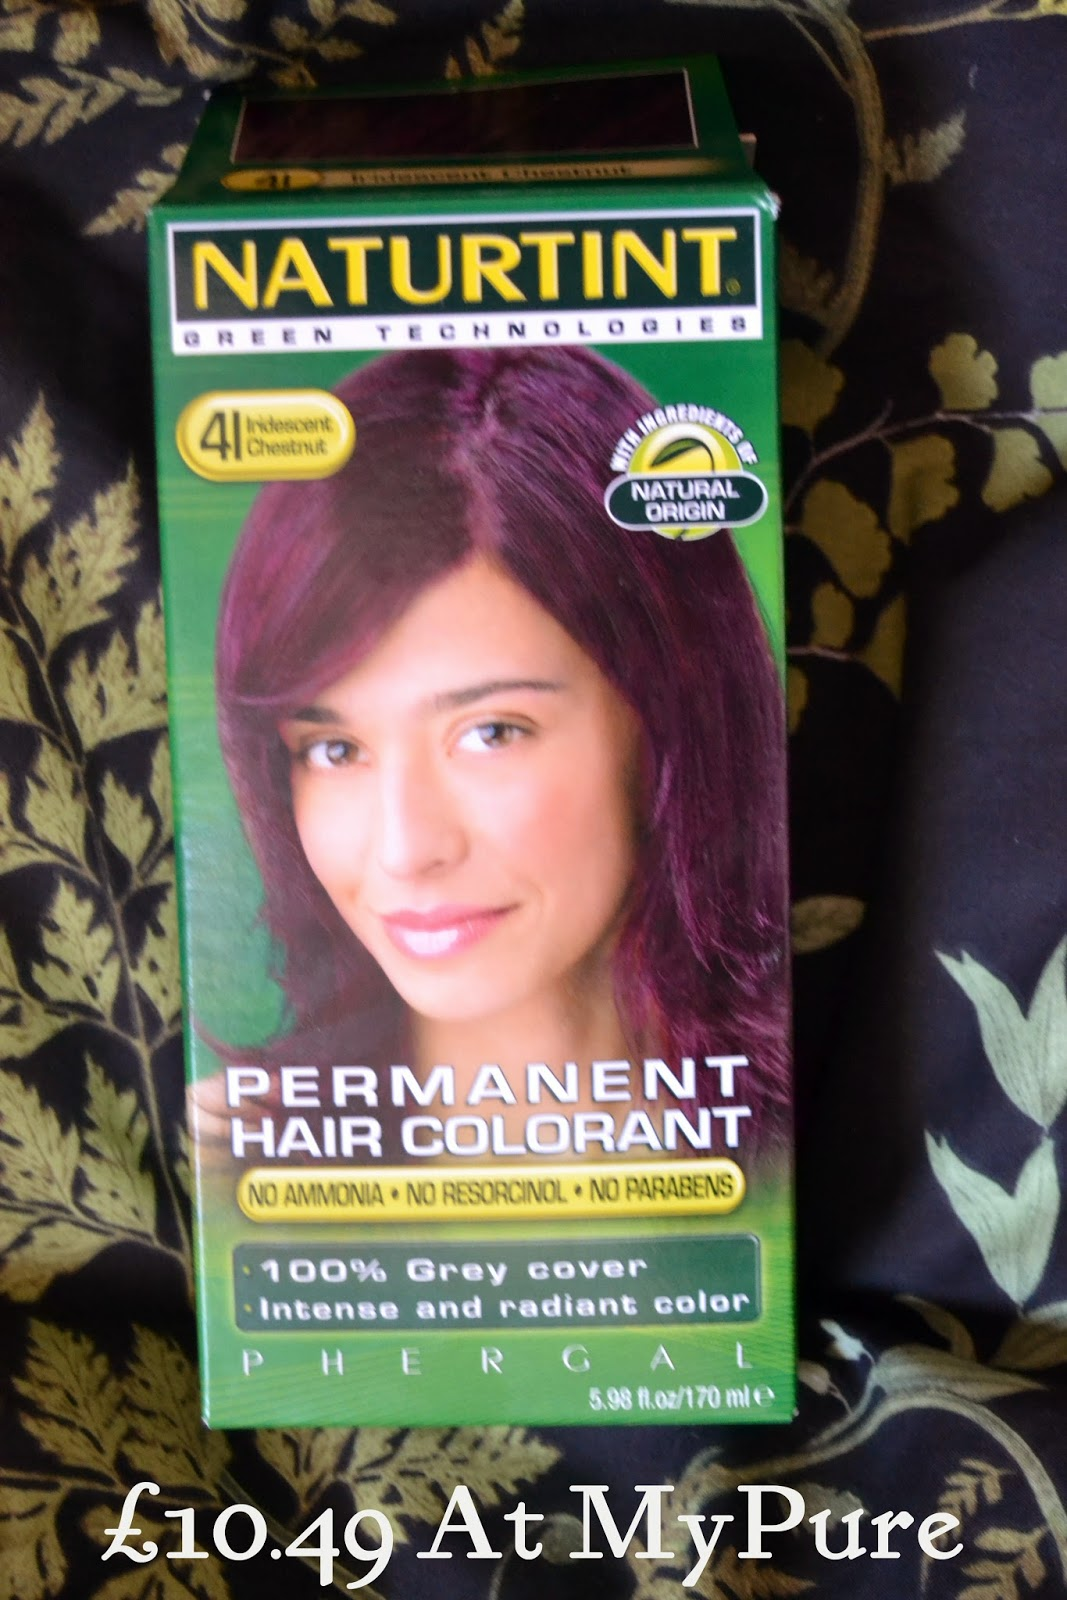 Gothinista Naturtint Hair Dye Review